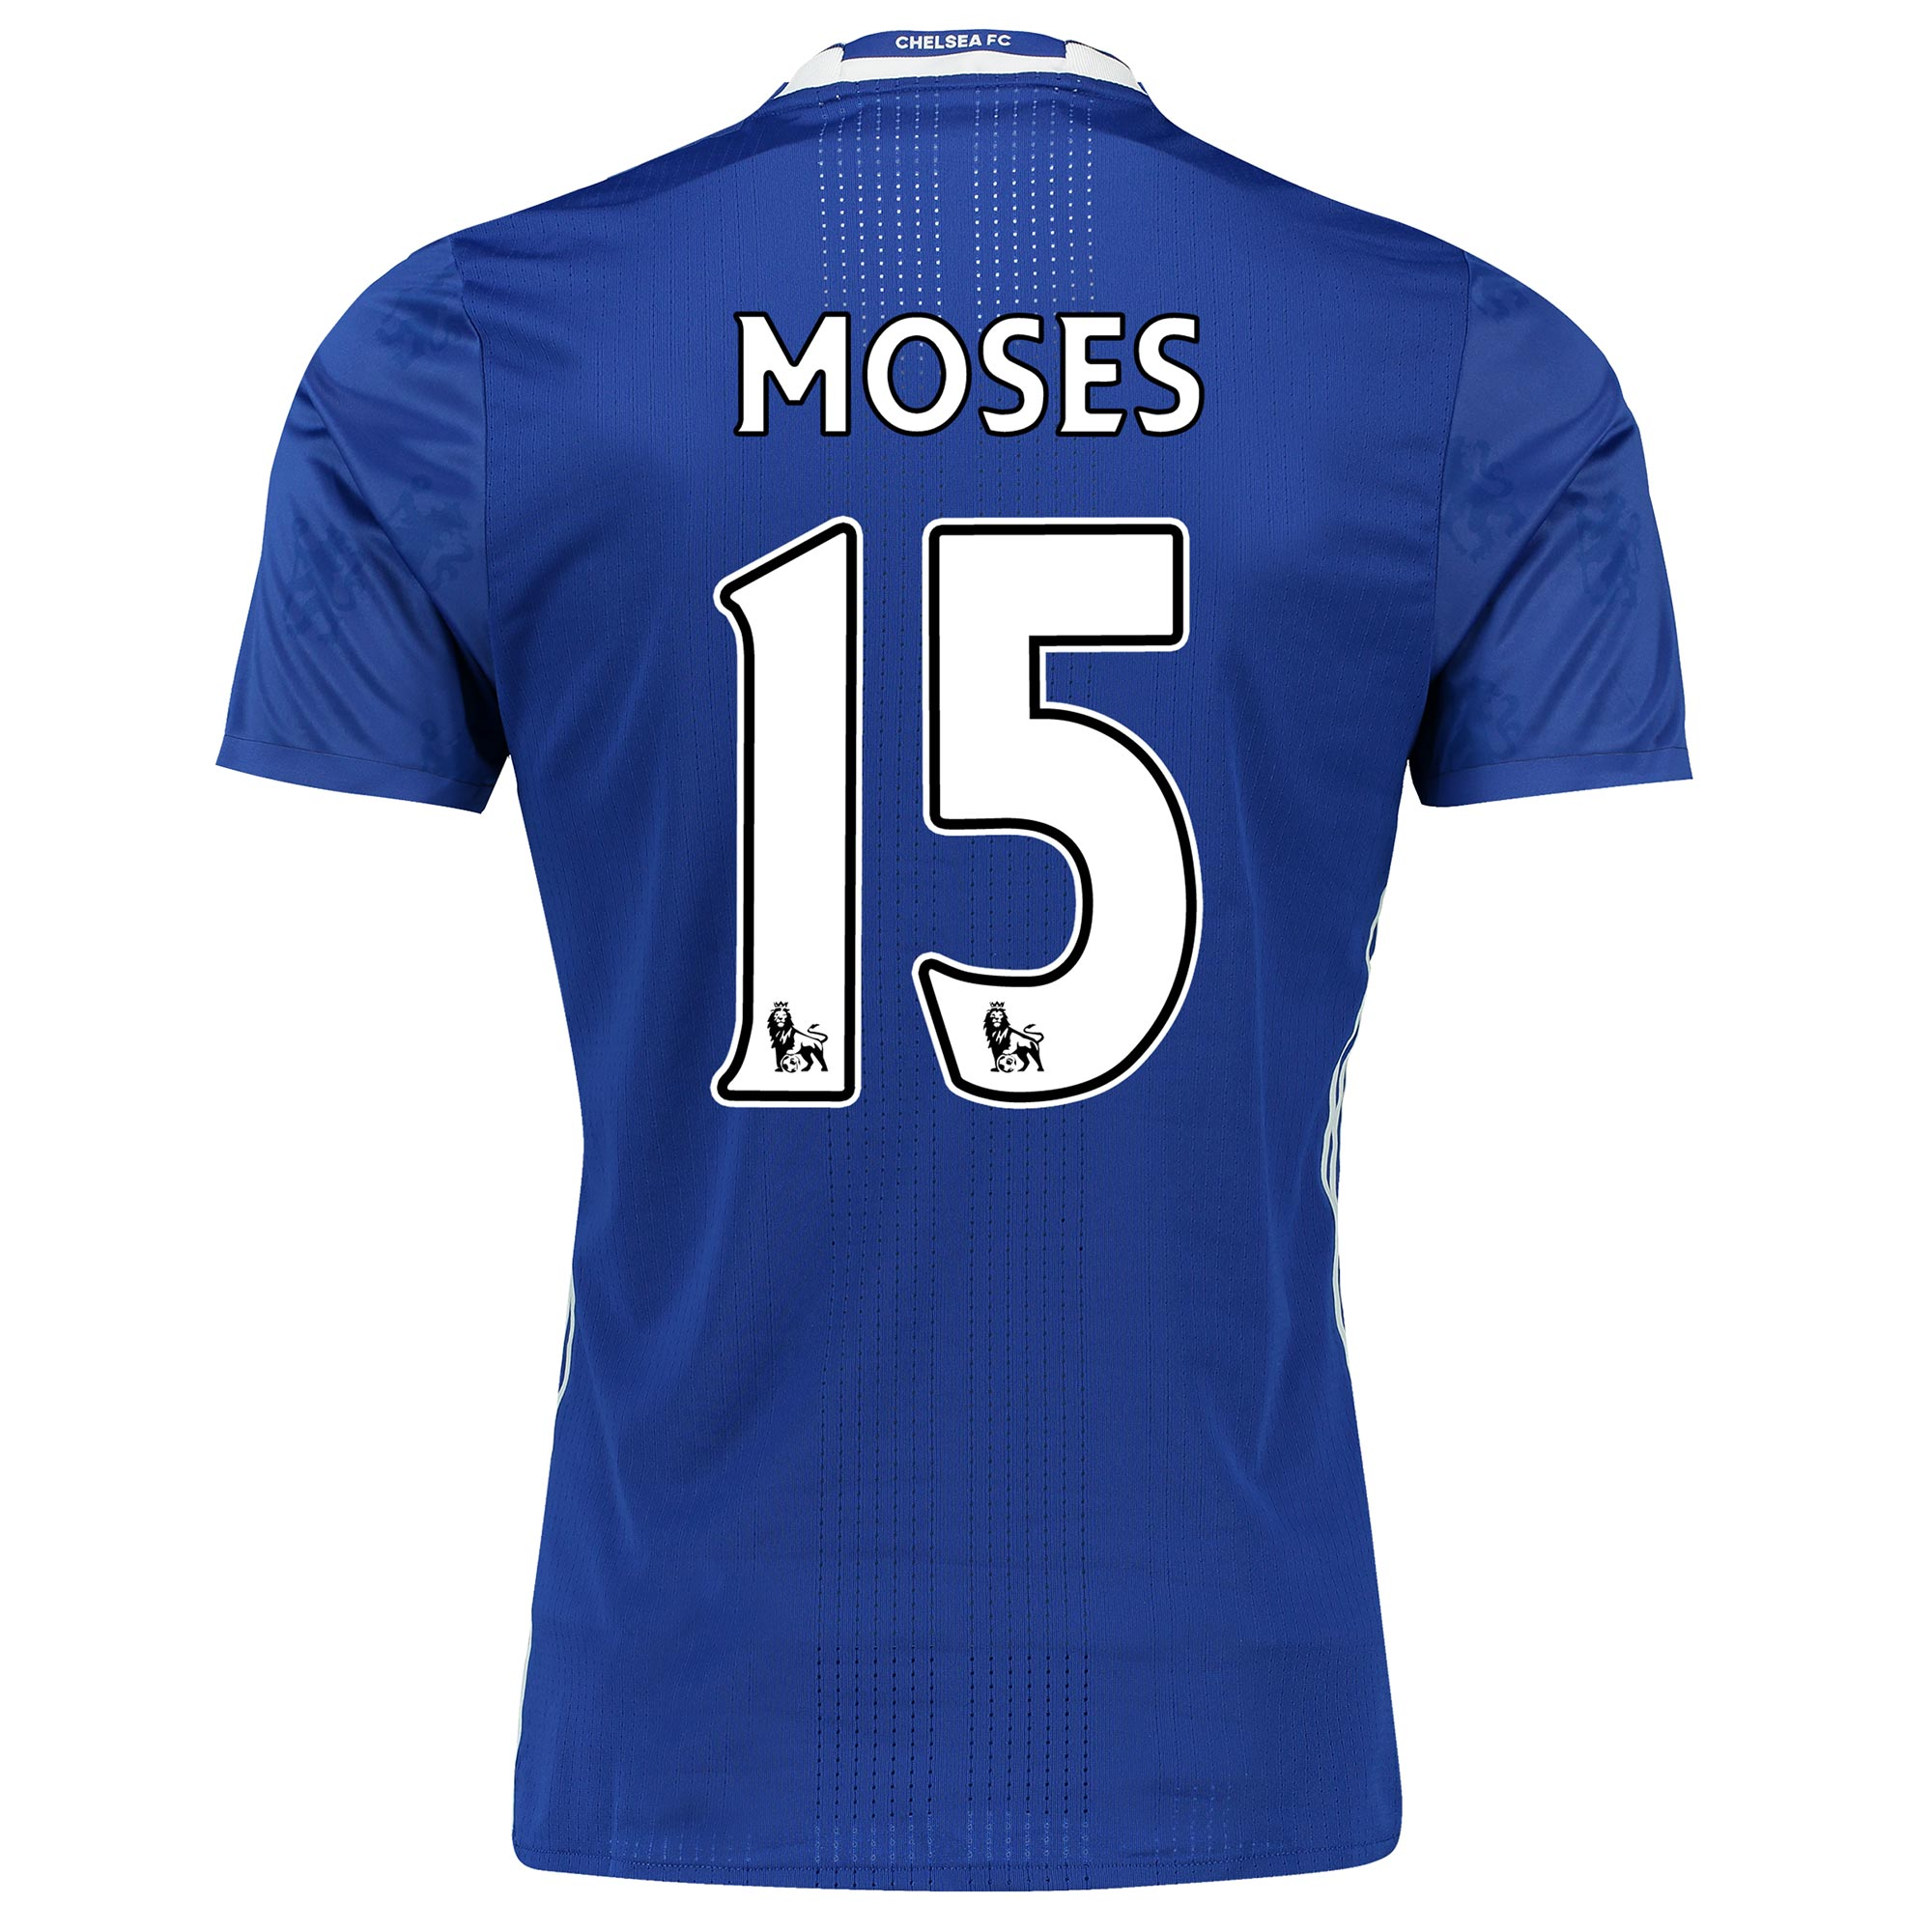 Shop Moses Printed Shirts